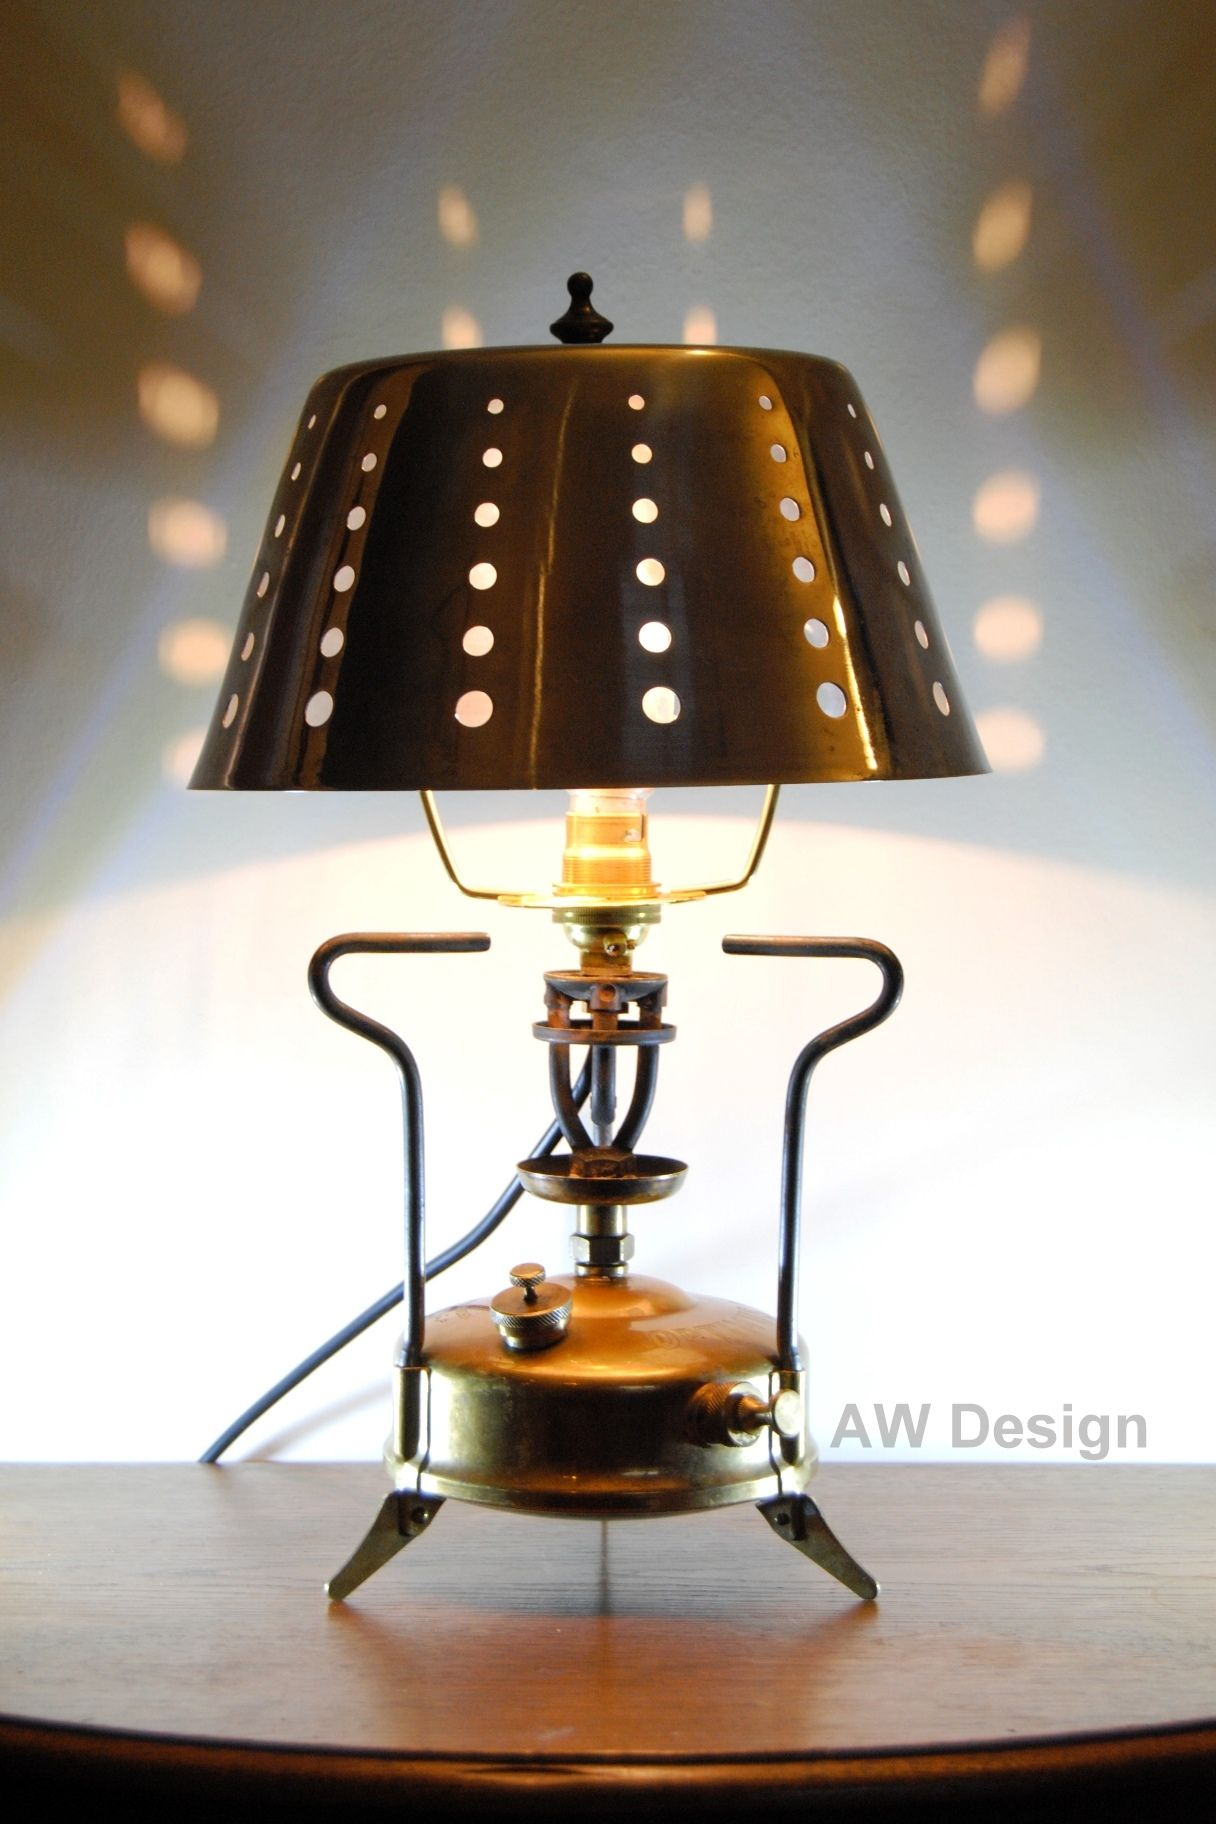 This Lamp Upcycling Project Is Based On A Vintage Brass